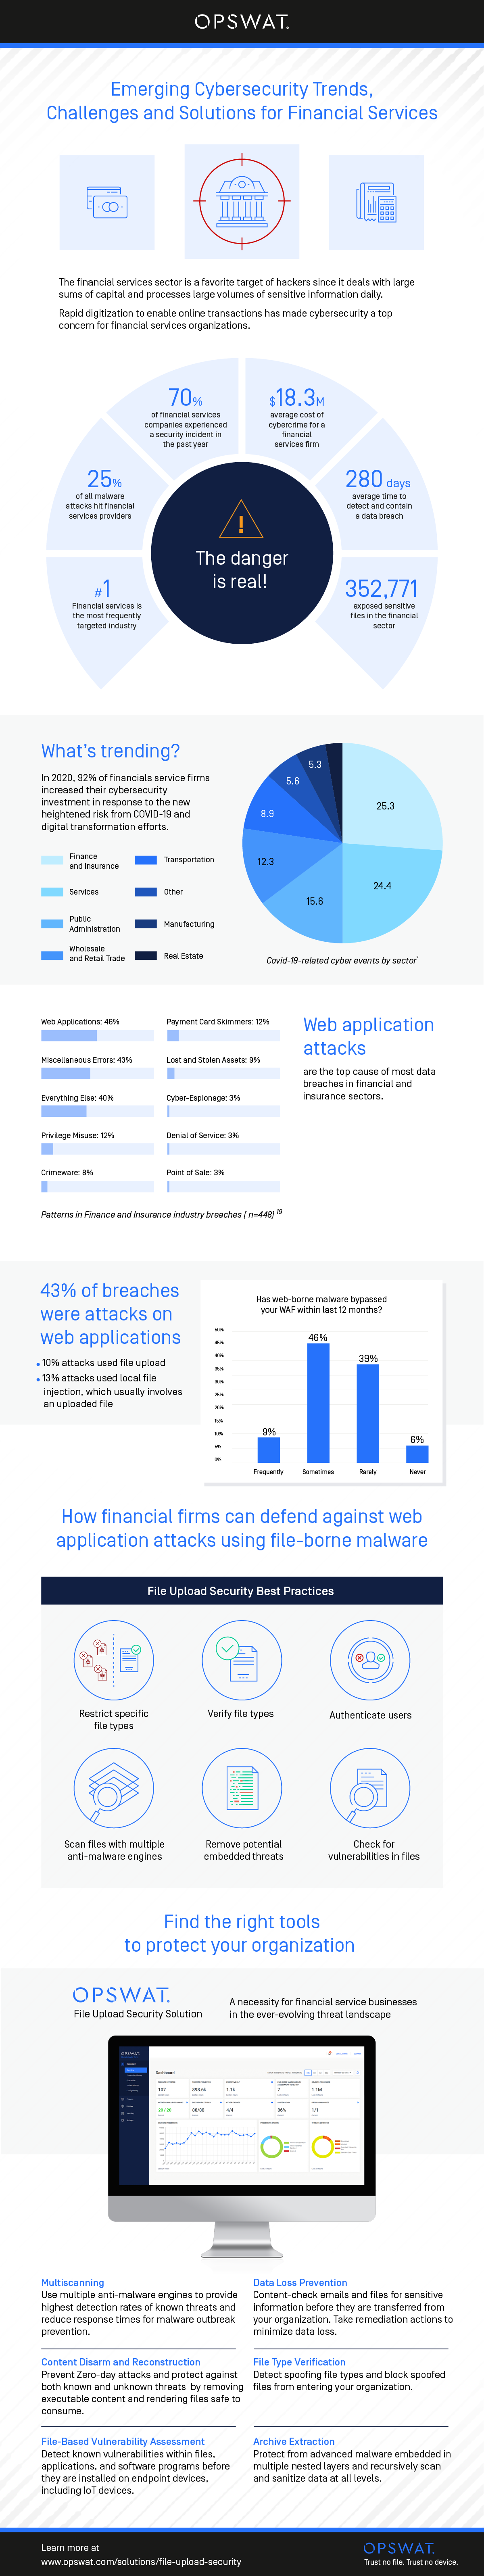 Infographic: Emerging Cybersecurity Trends, Challenges and Solutions for Financial Services